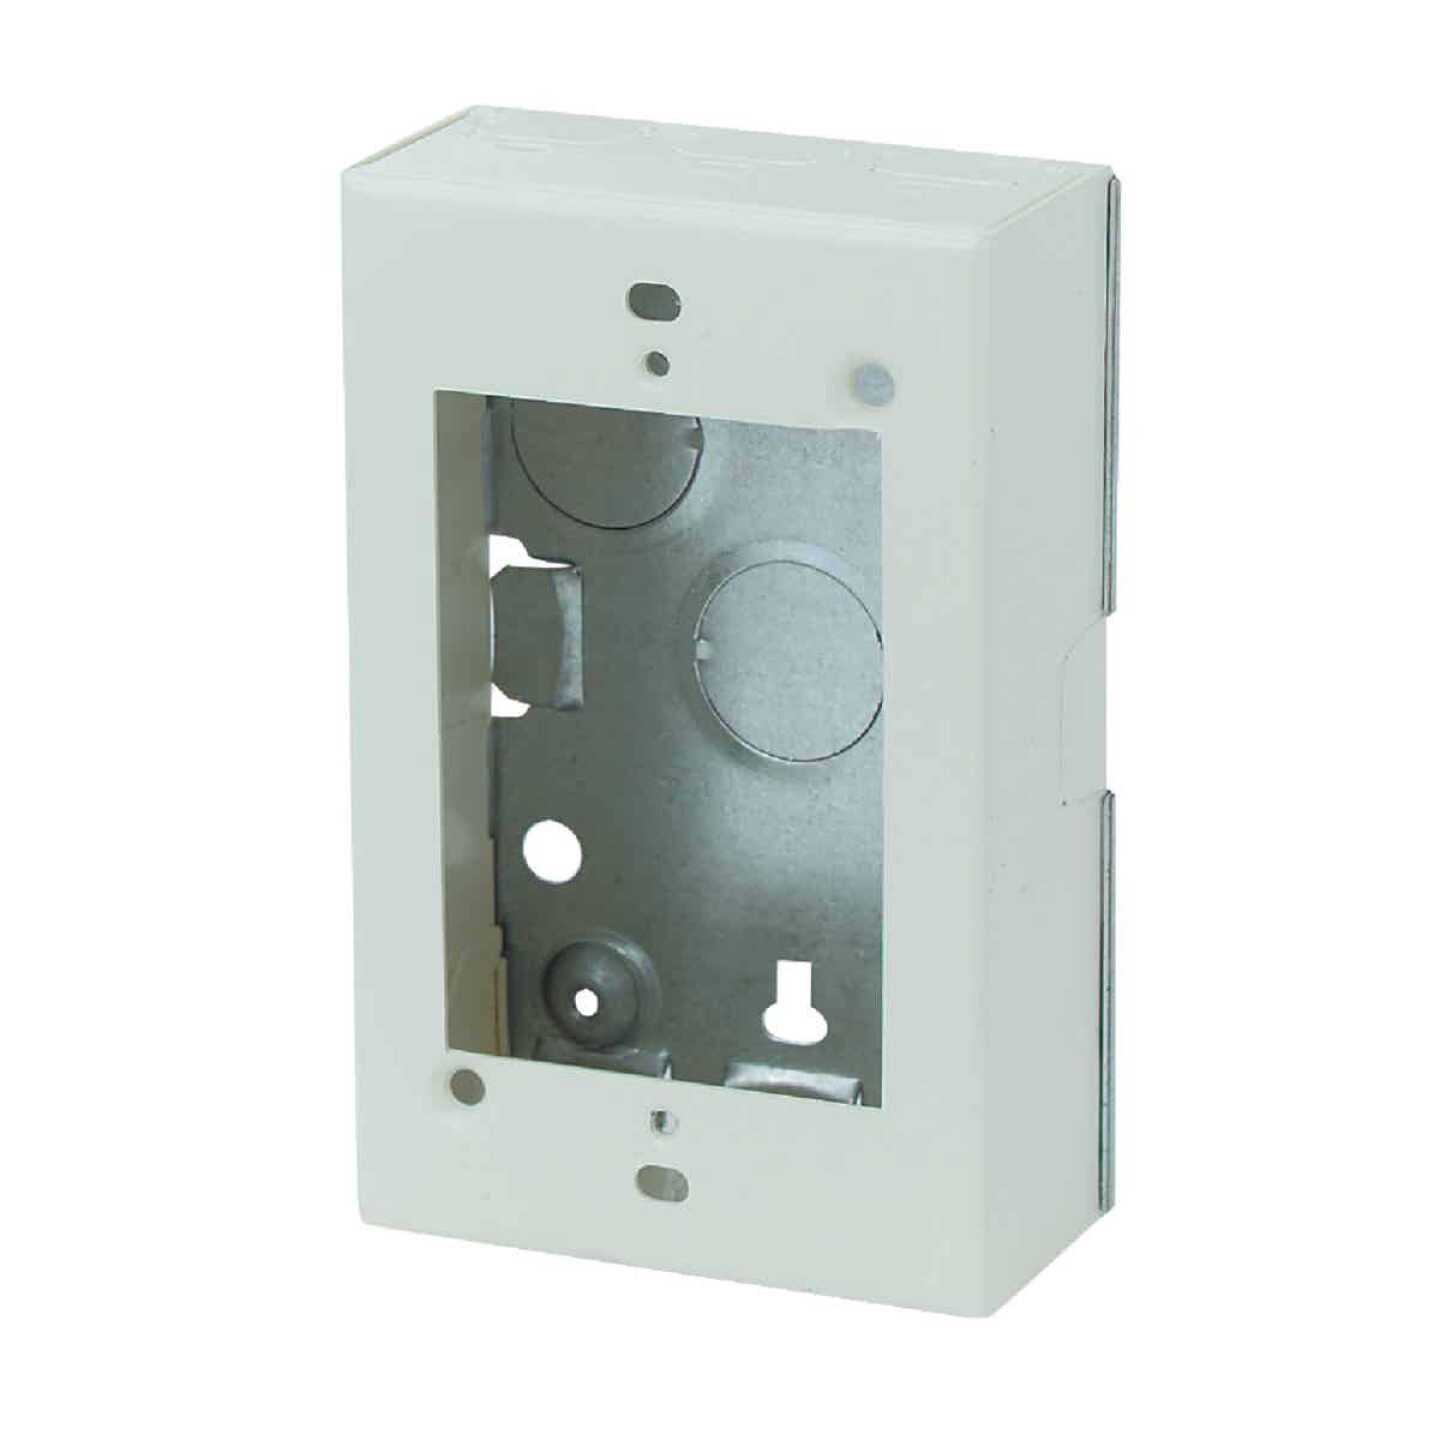 Wiremold Ivory Steel 1-3/8 In. Outlet Box Image 1